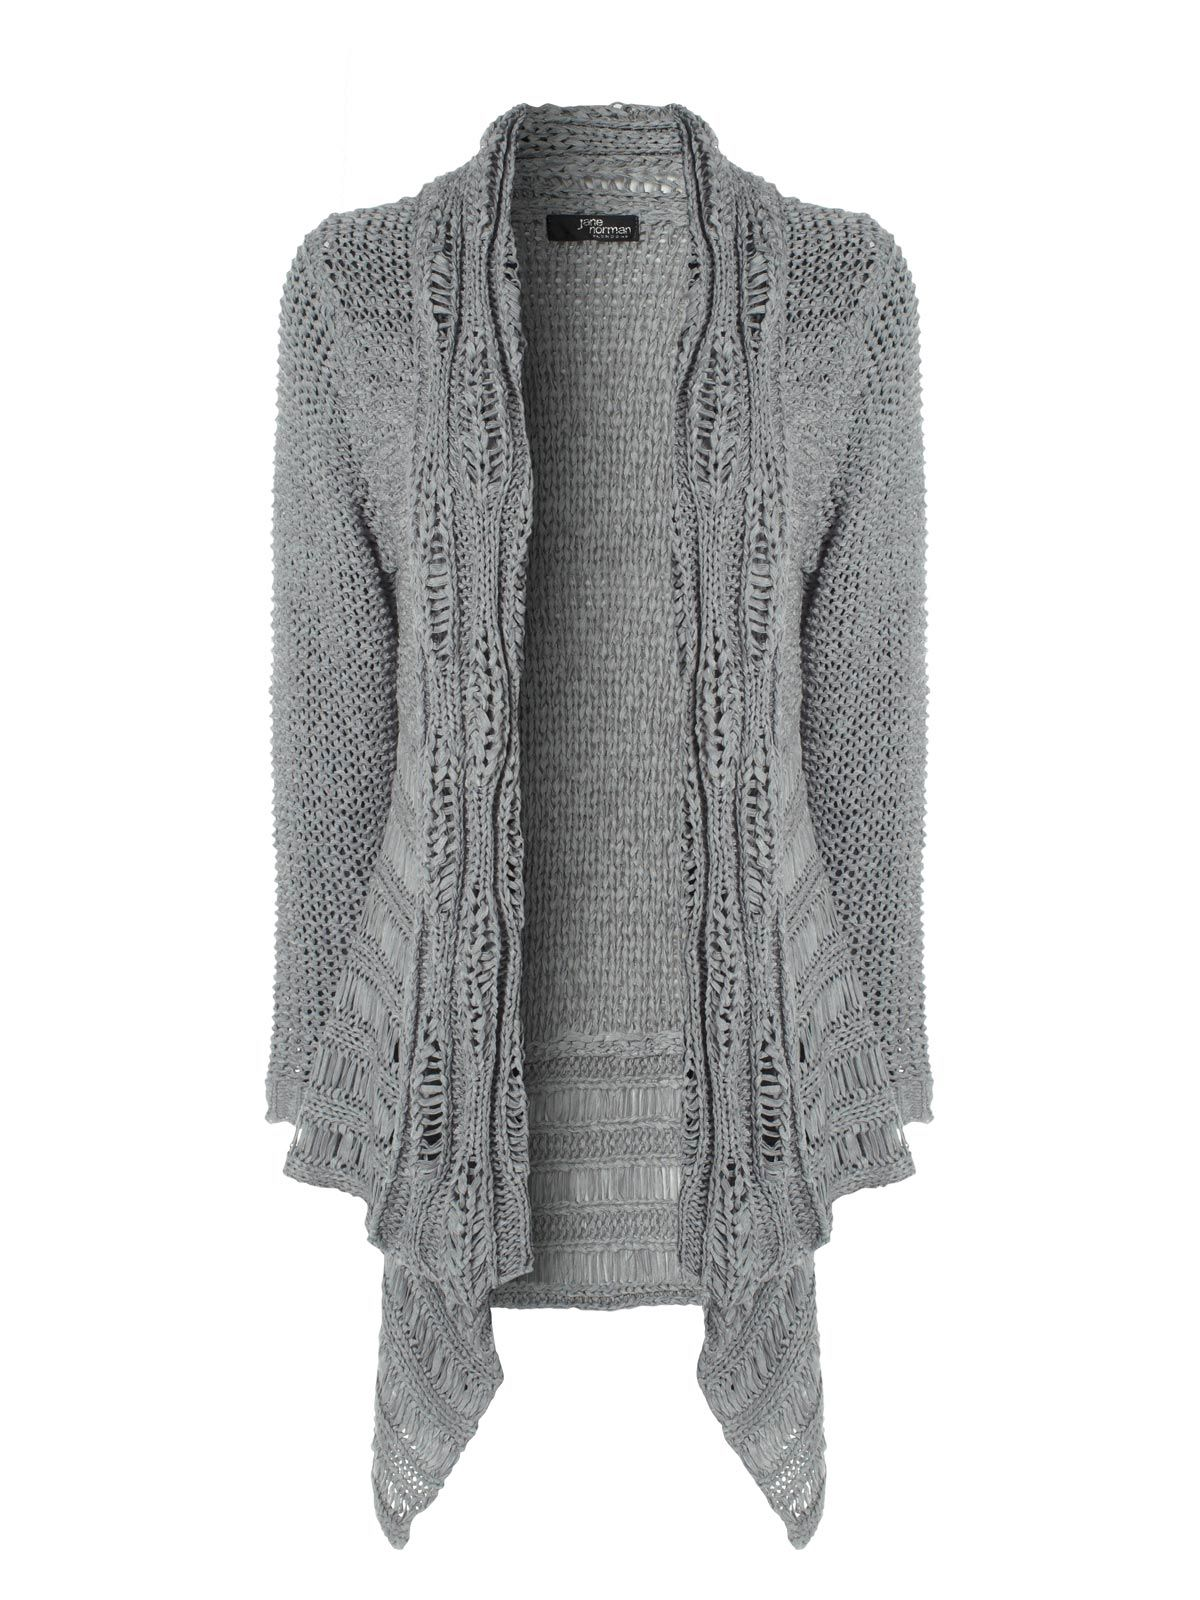 silver cable ladder stitch cardigan | Yarny things and knitting ...